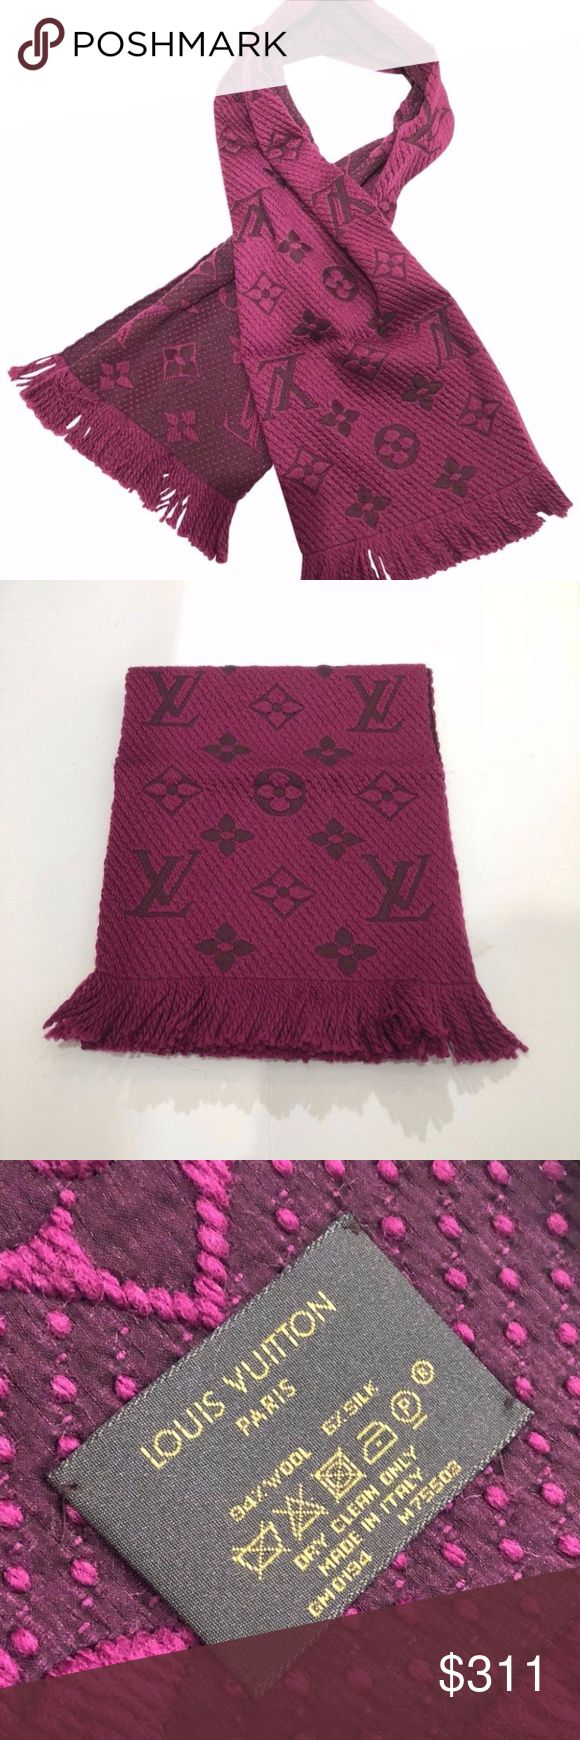 """Louis Vuitton Logomania Purple Wool Scarf Louis Vuitton Logomania Purple Wool Scarf Used a few times.  Pristine condition. Absolutely no signs of wear or smells.  Made in Italy.  Color: purple Brand: Louis Vuitton Measurements: 64""""L x 0.02""""H x 12""""W Louis Vuitton Accessories Scarves & Wraps"""